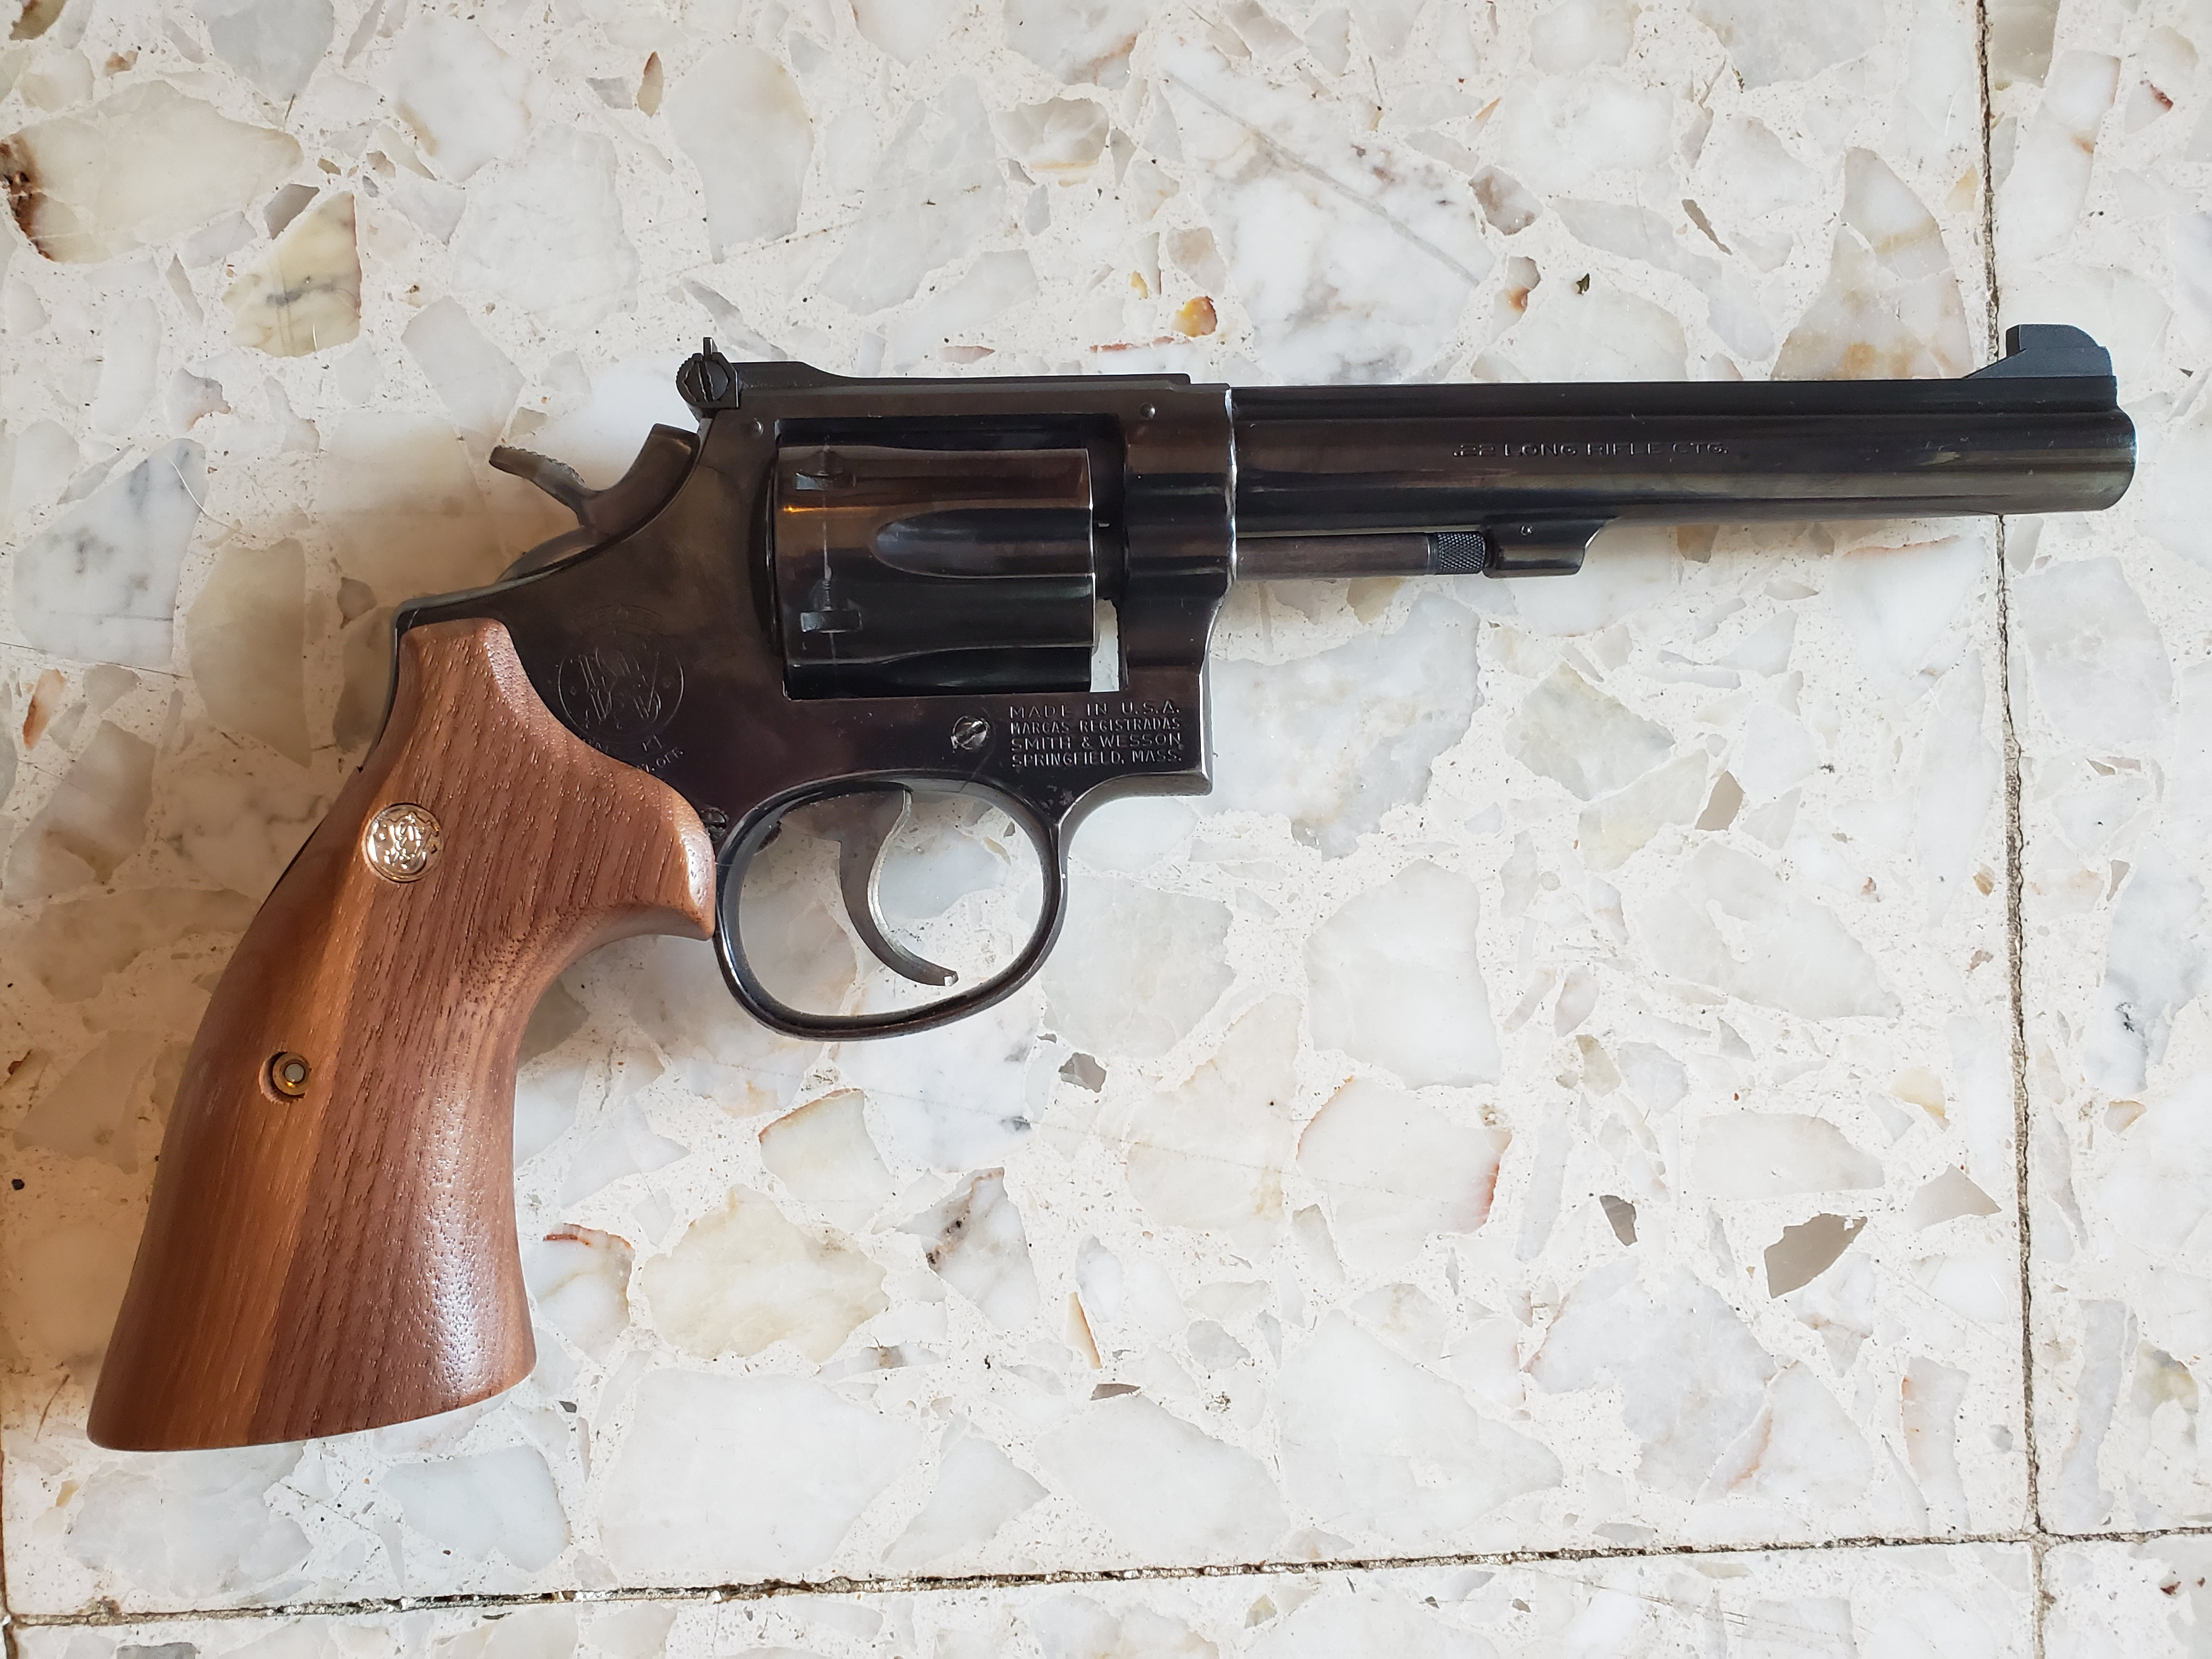 WTS:  Smith and Wesson Model 17-4, 22 LR-20190527_091305.jpg